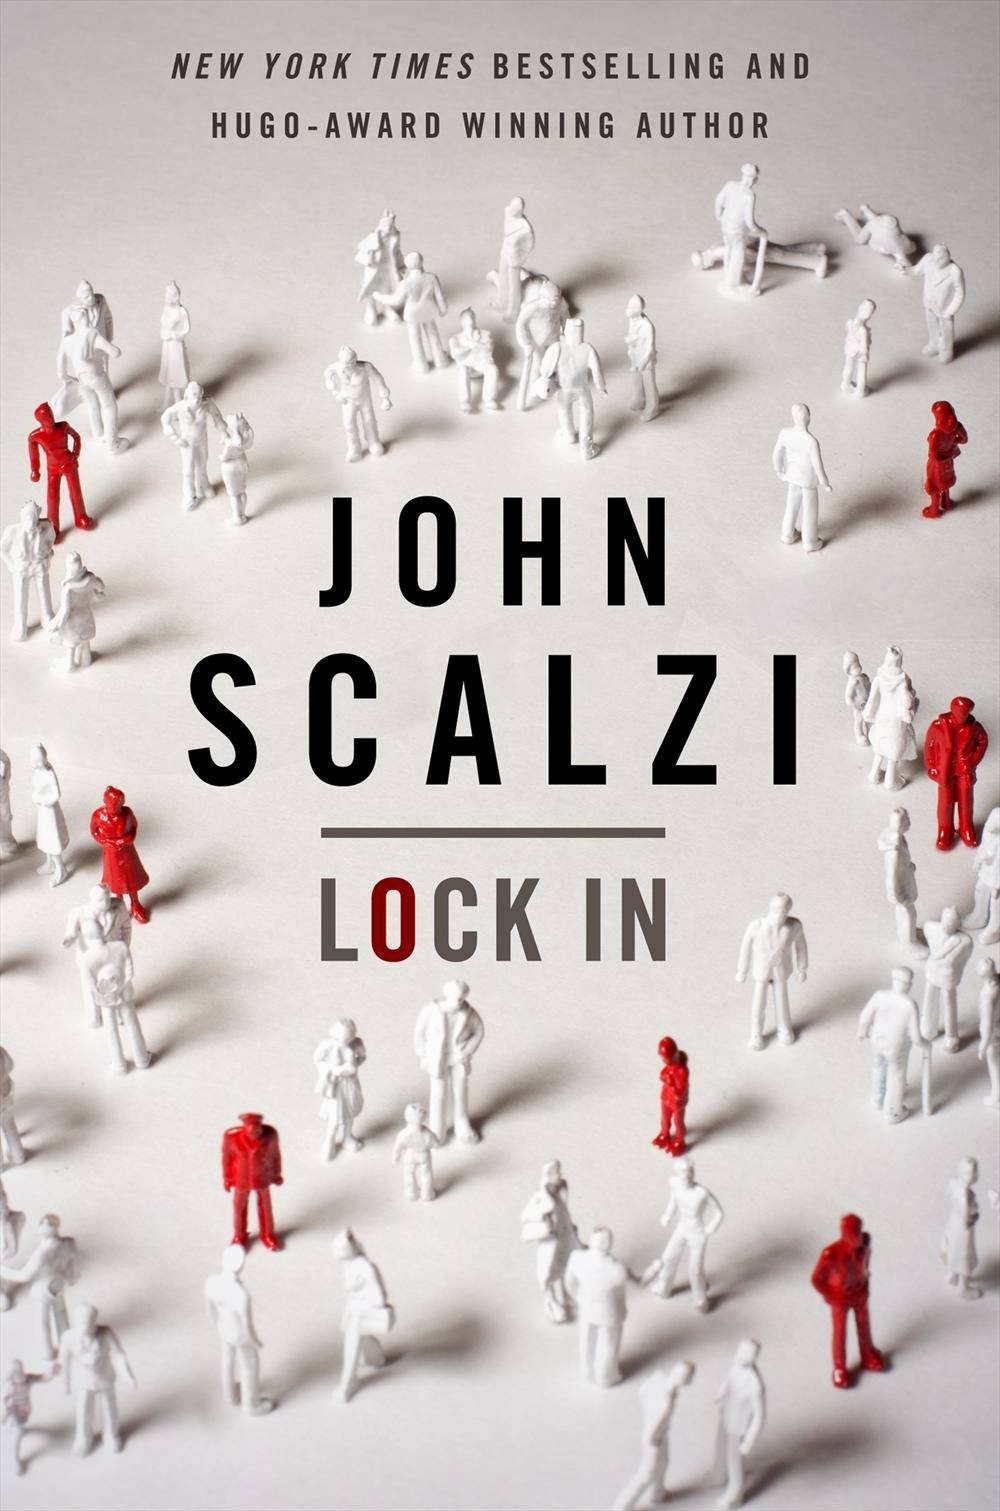 While the idea of using robots as avatars isn't a new one, the world that John Scalzi creates with his is, in a word, incredible. The effortless way that he incorporates futuristic civil rights, inevitable human nature, and a fantasy world that actually seems attainable, all while creating a story where the reader is invested and interested, is what makes Lock In so consumable.     John Scalzi's in depth world of threeps, Hadens, integrators, and those unaffected by the flu and meningitis-like disease that affected a strong majority of the population has so much room for expansion, and it would be a crying shame if this was the only book in the series.